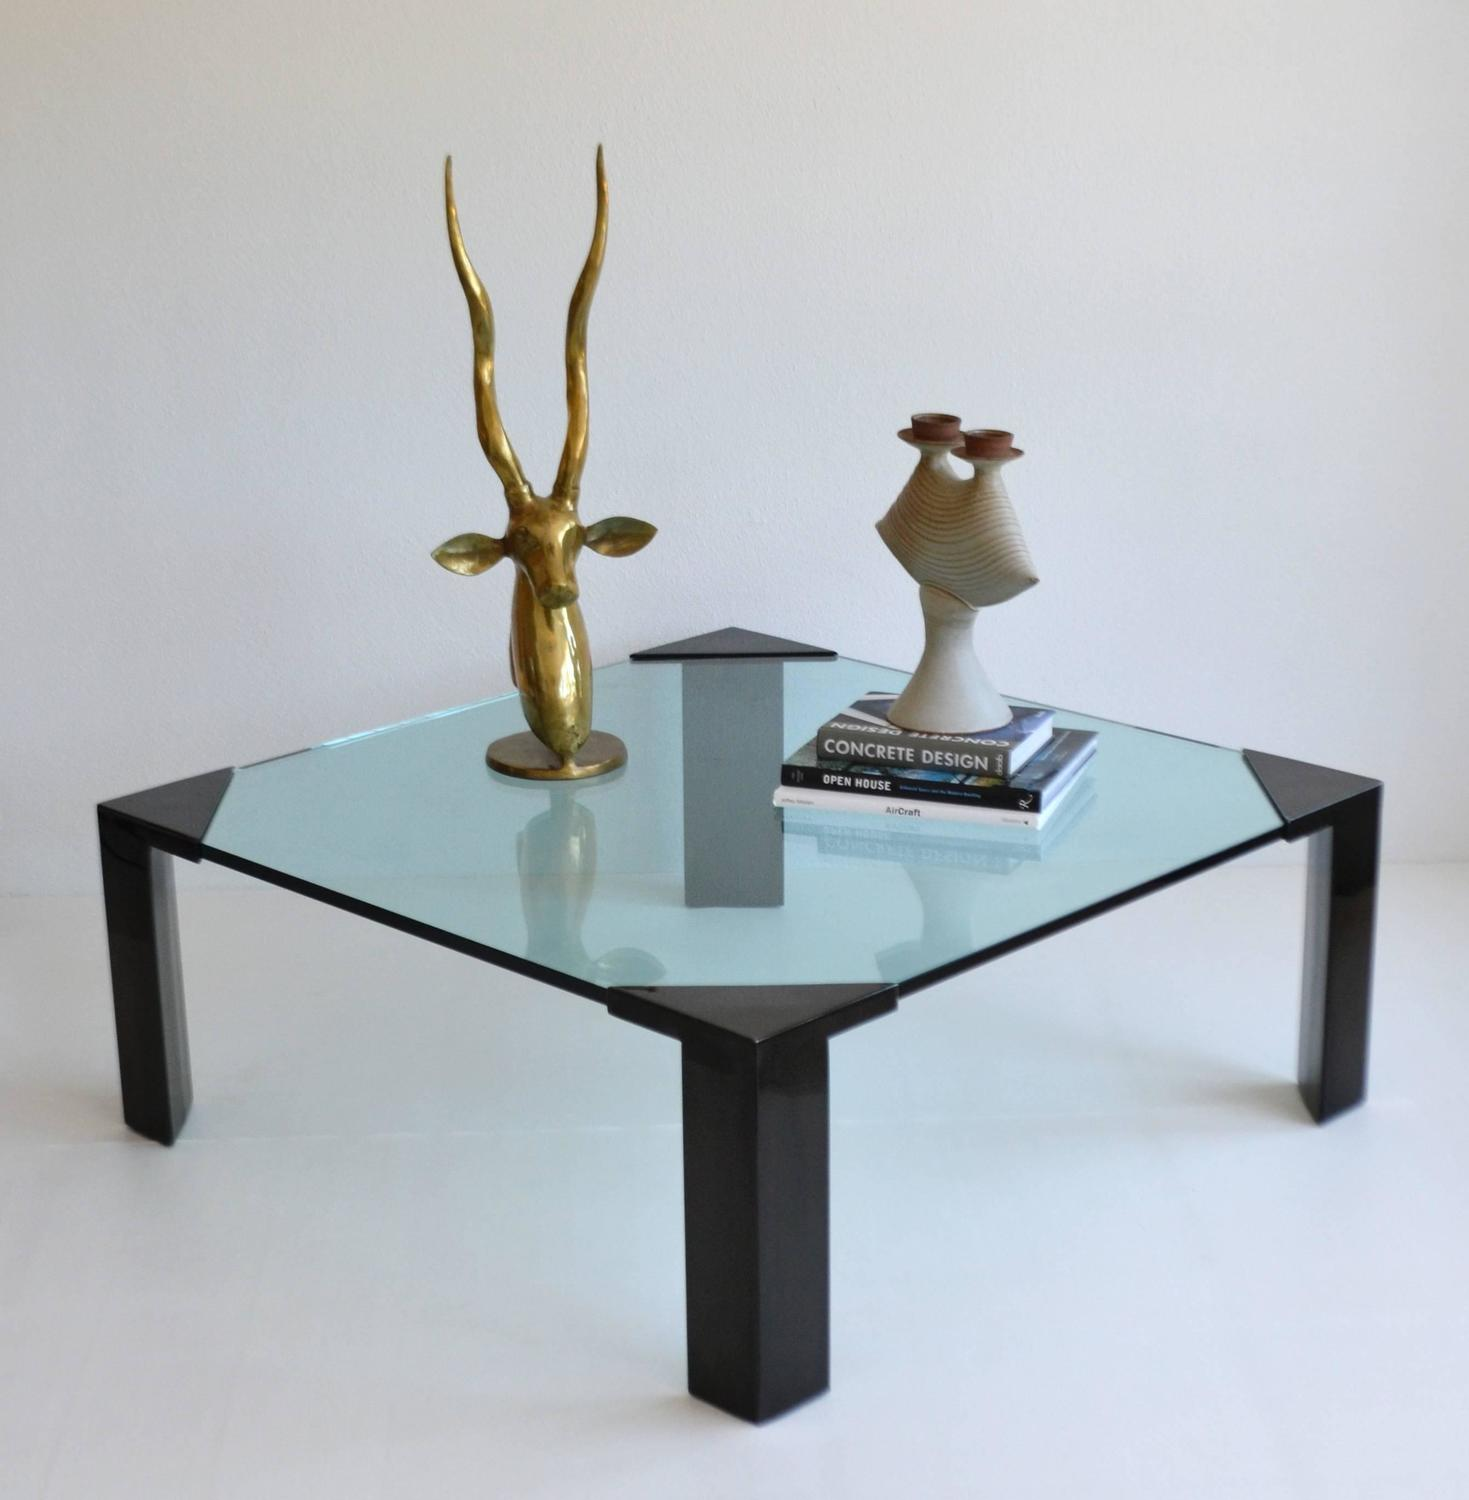 Post Modern Coffee Tables: Post-Modern Cocktail/Coffee Table For Sale At 1stdibs